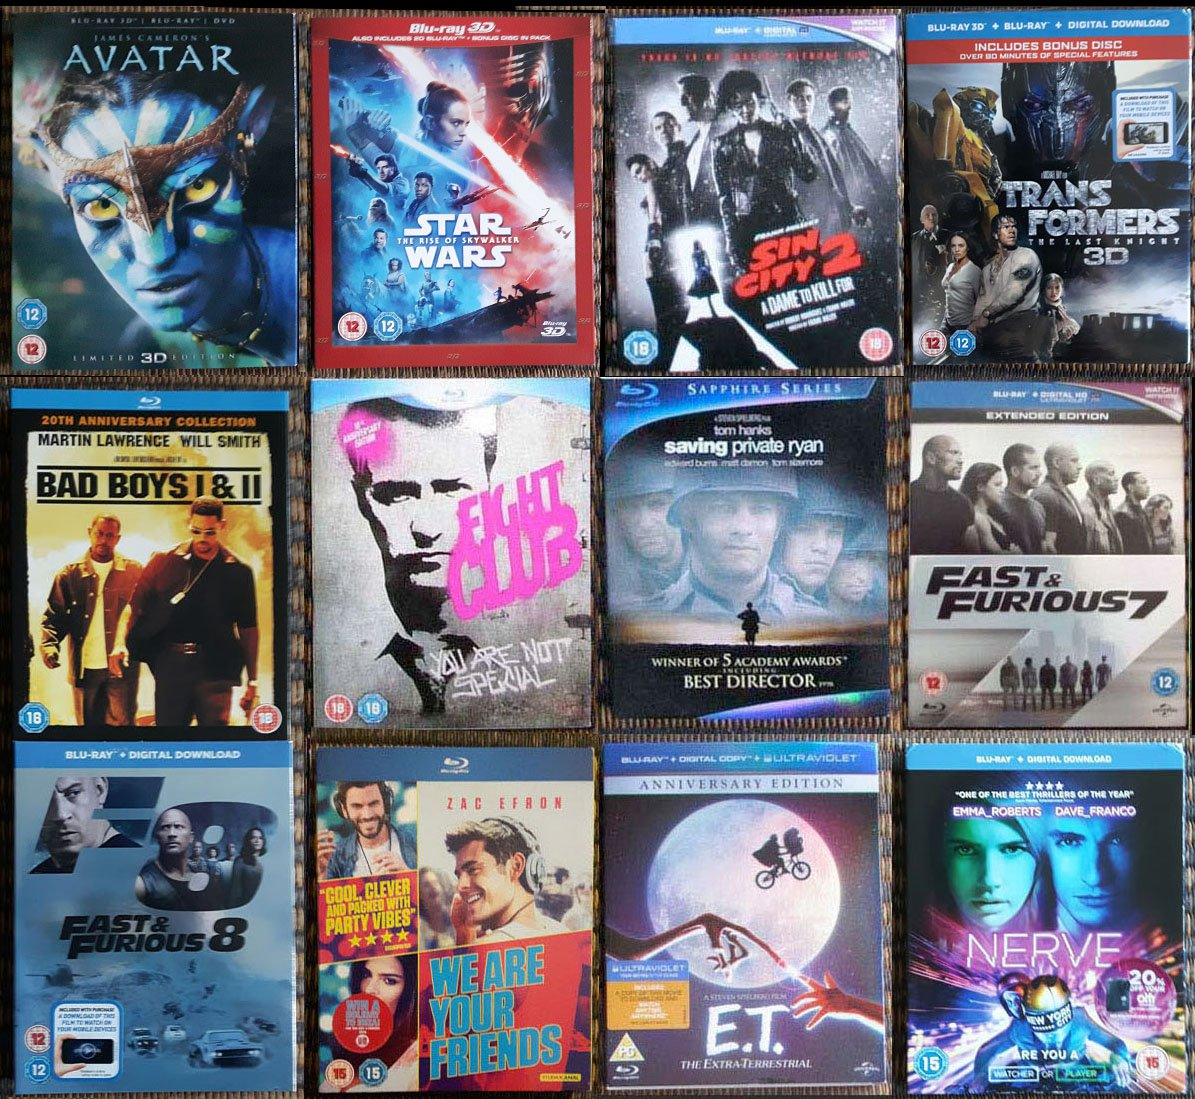 12x Blu-ray slip covers E.T. Avatar 3D Fight Club Transformers Fast and furious 7 8